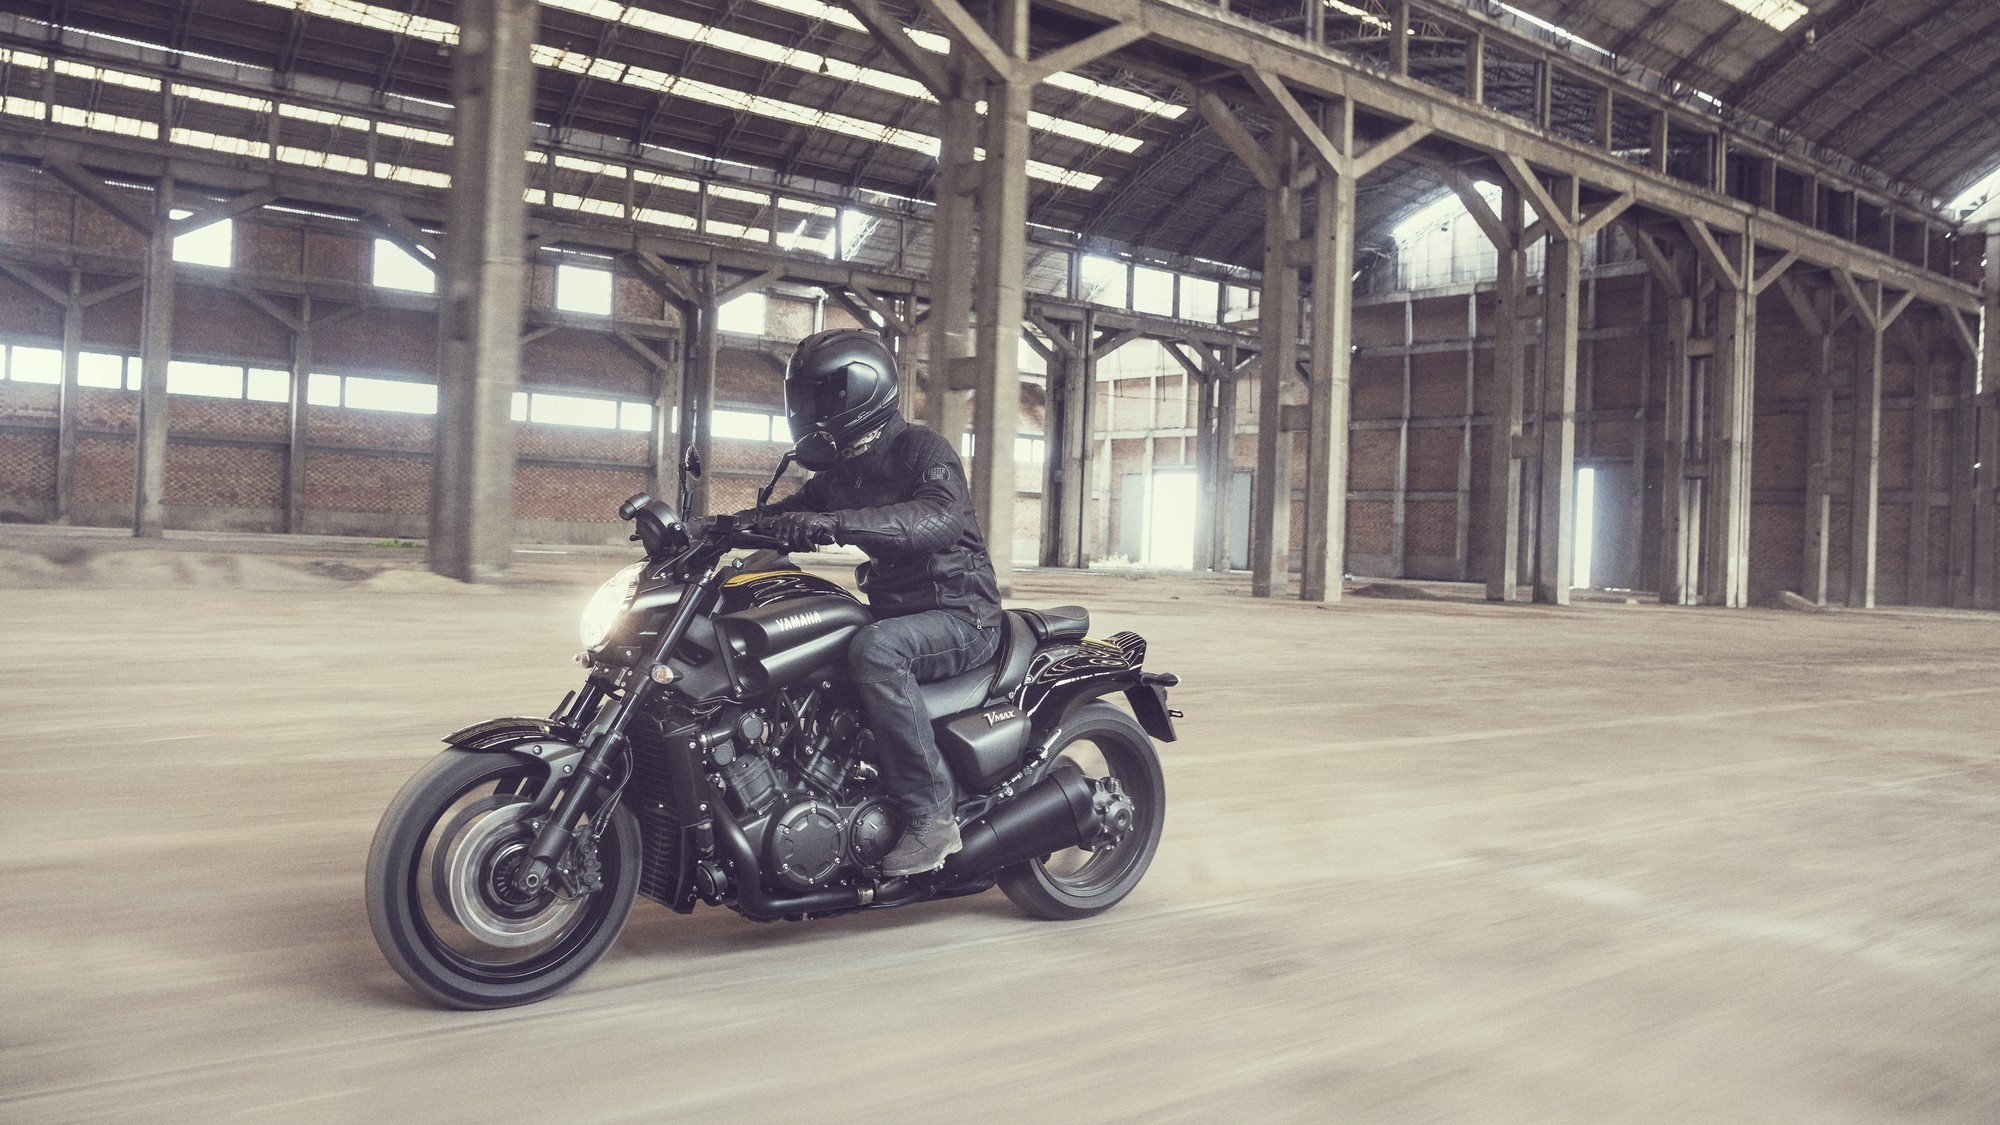 Take A Bow The Yamaha VMAX Leaves Scene